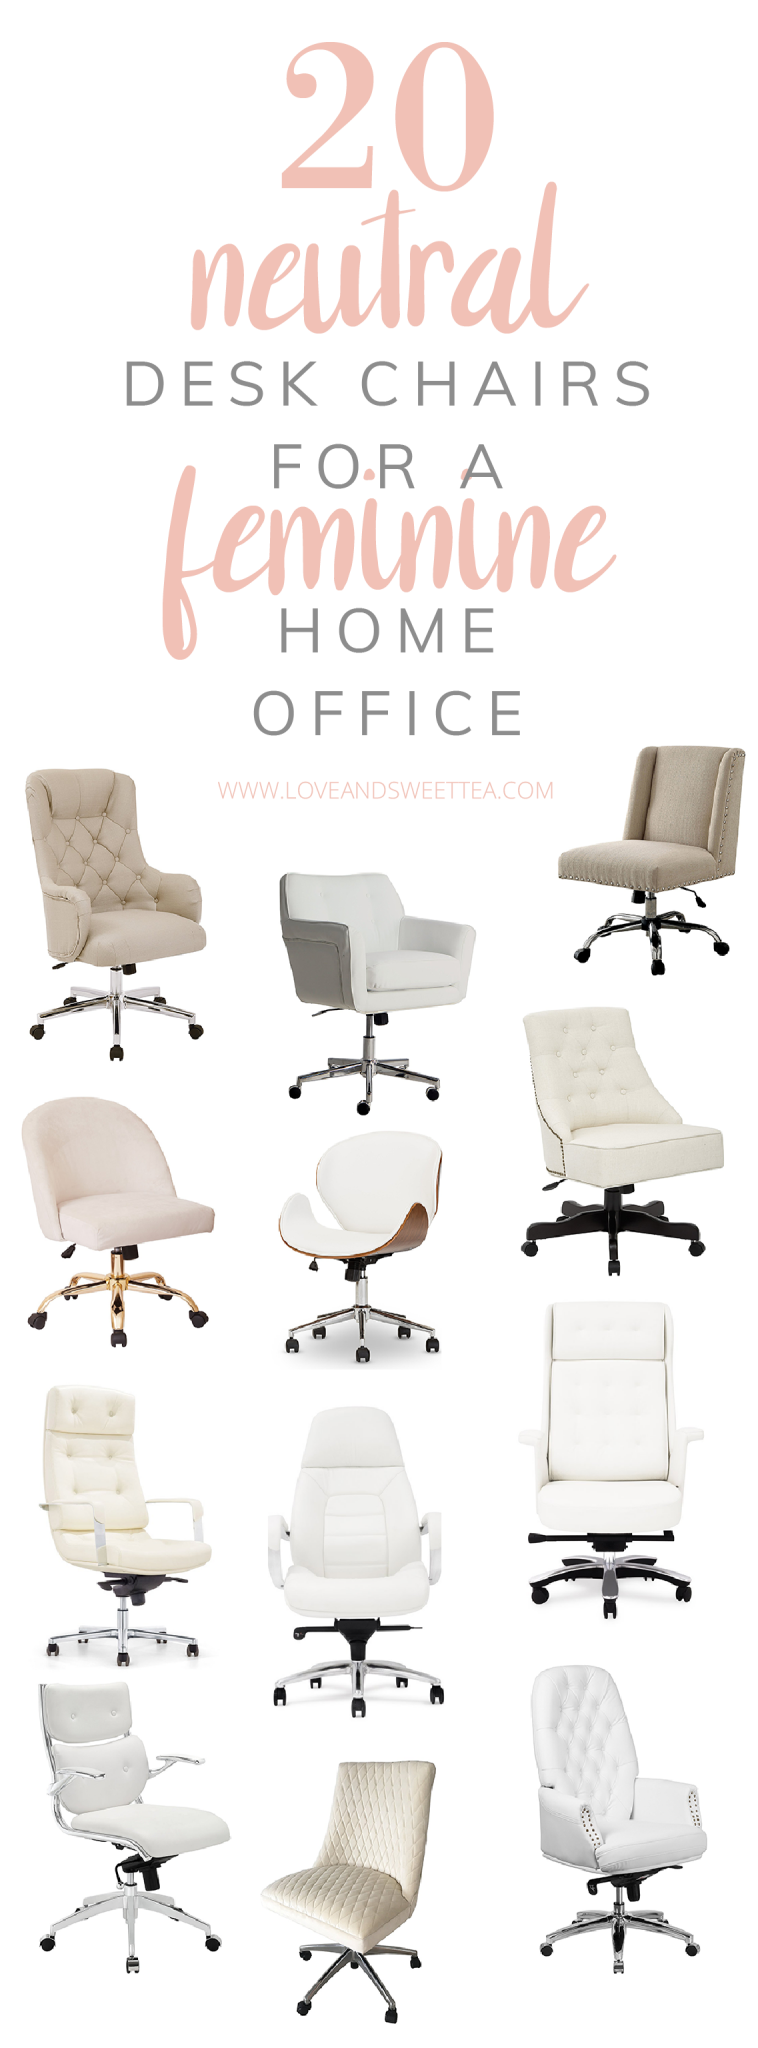 20 Cheap Comfy Desk Chair Ideas For Beautiful Home Offices or Bedrooms - Love & Sweet Tea